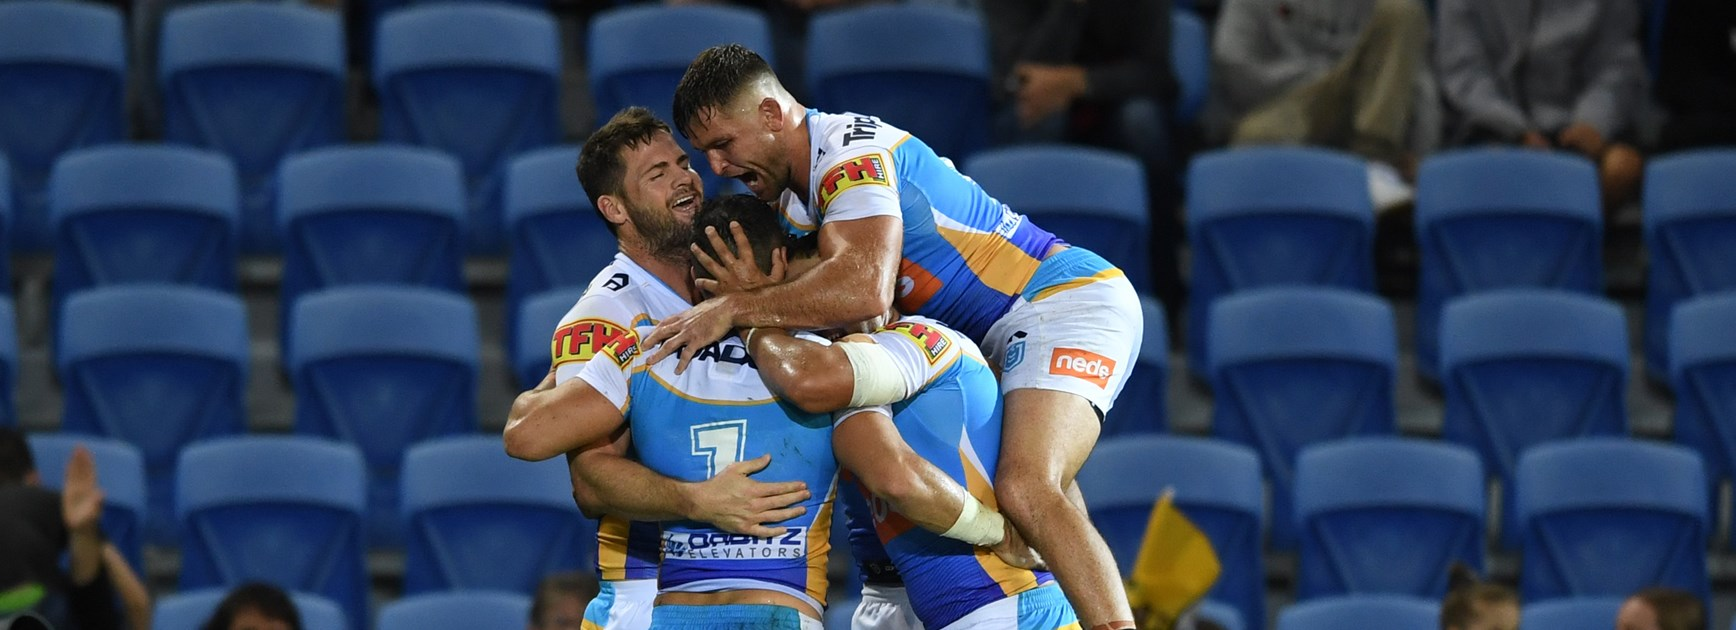 Titans Look The Goods In Tight Win Over Panthers